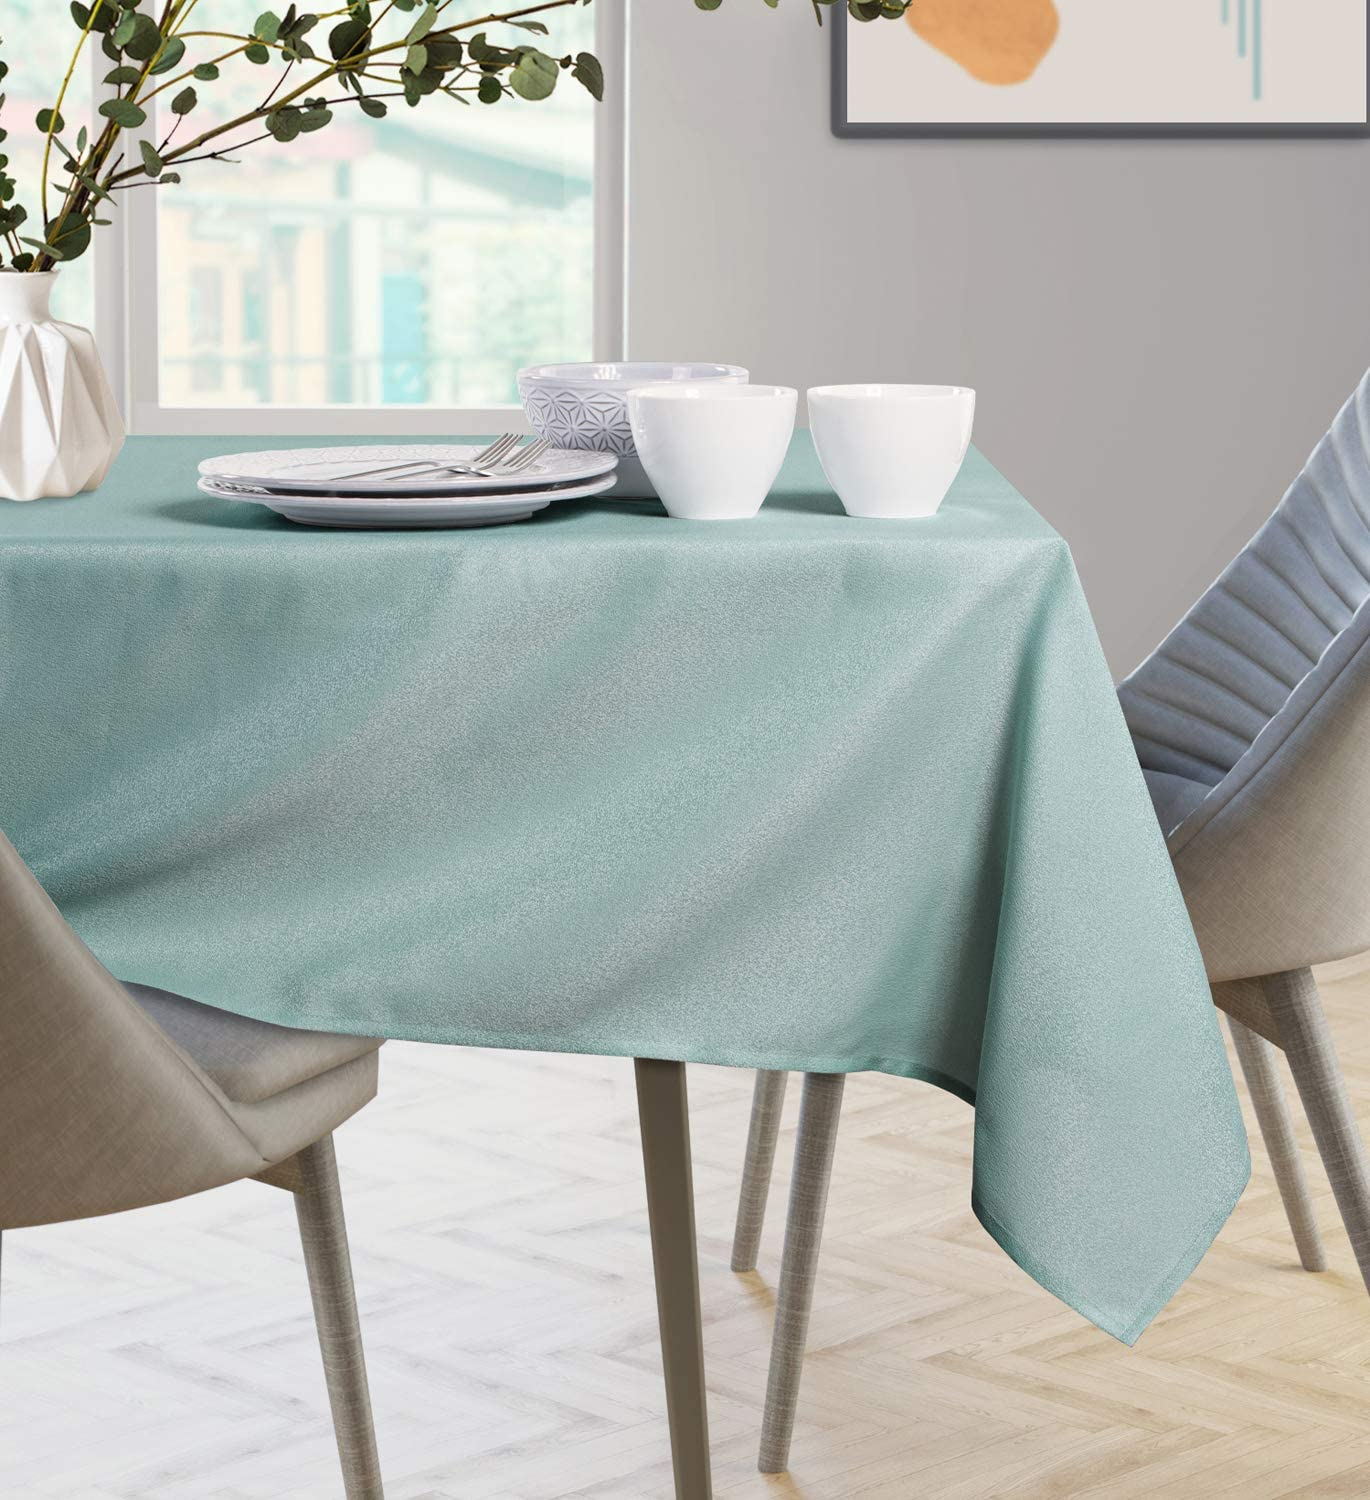 AmeliaHome Nappe hydrofuge 110x110 cm Empire Cappuccino Polyester